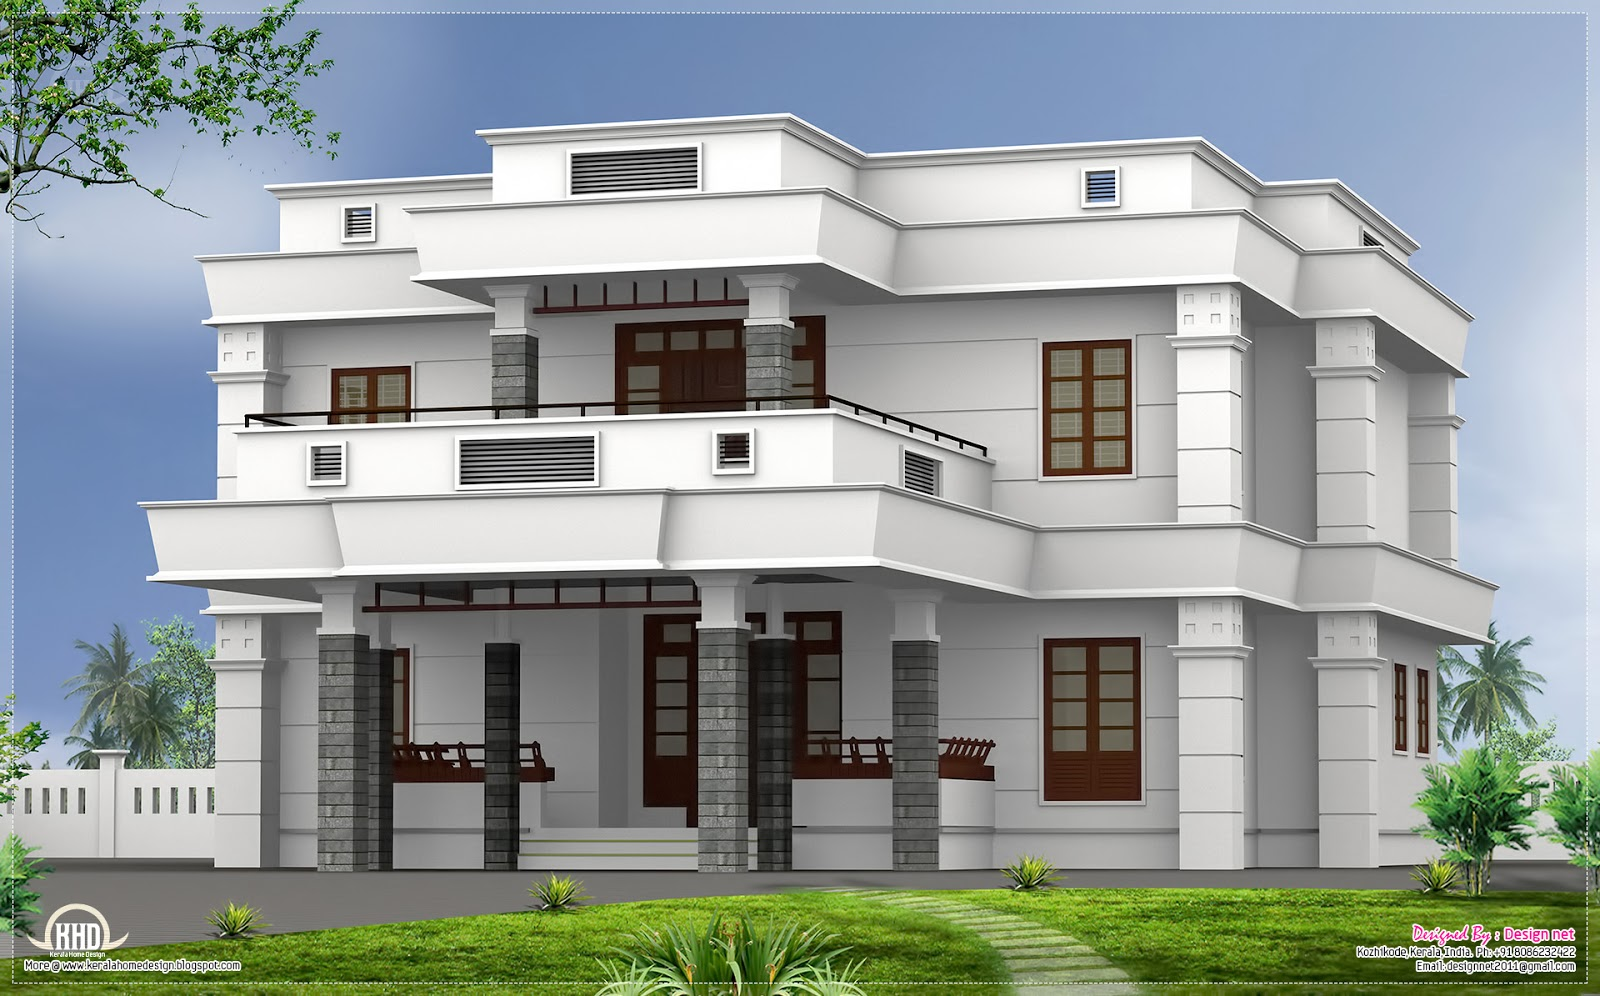 Eco friendly houses 5 bhk modern flat roof house design Flat house plans